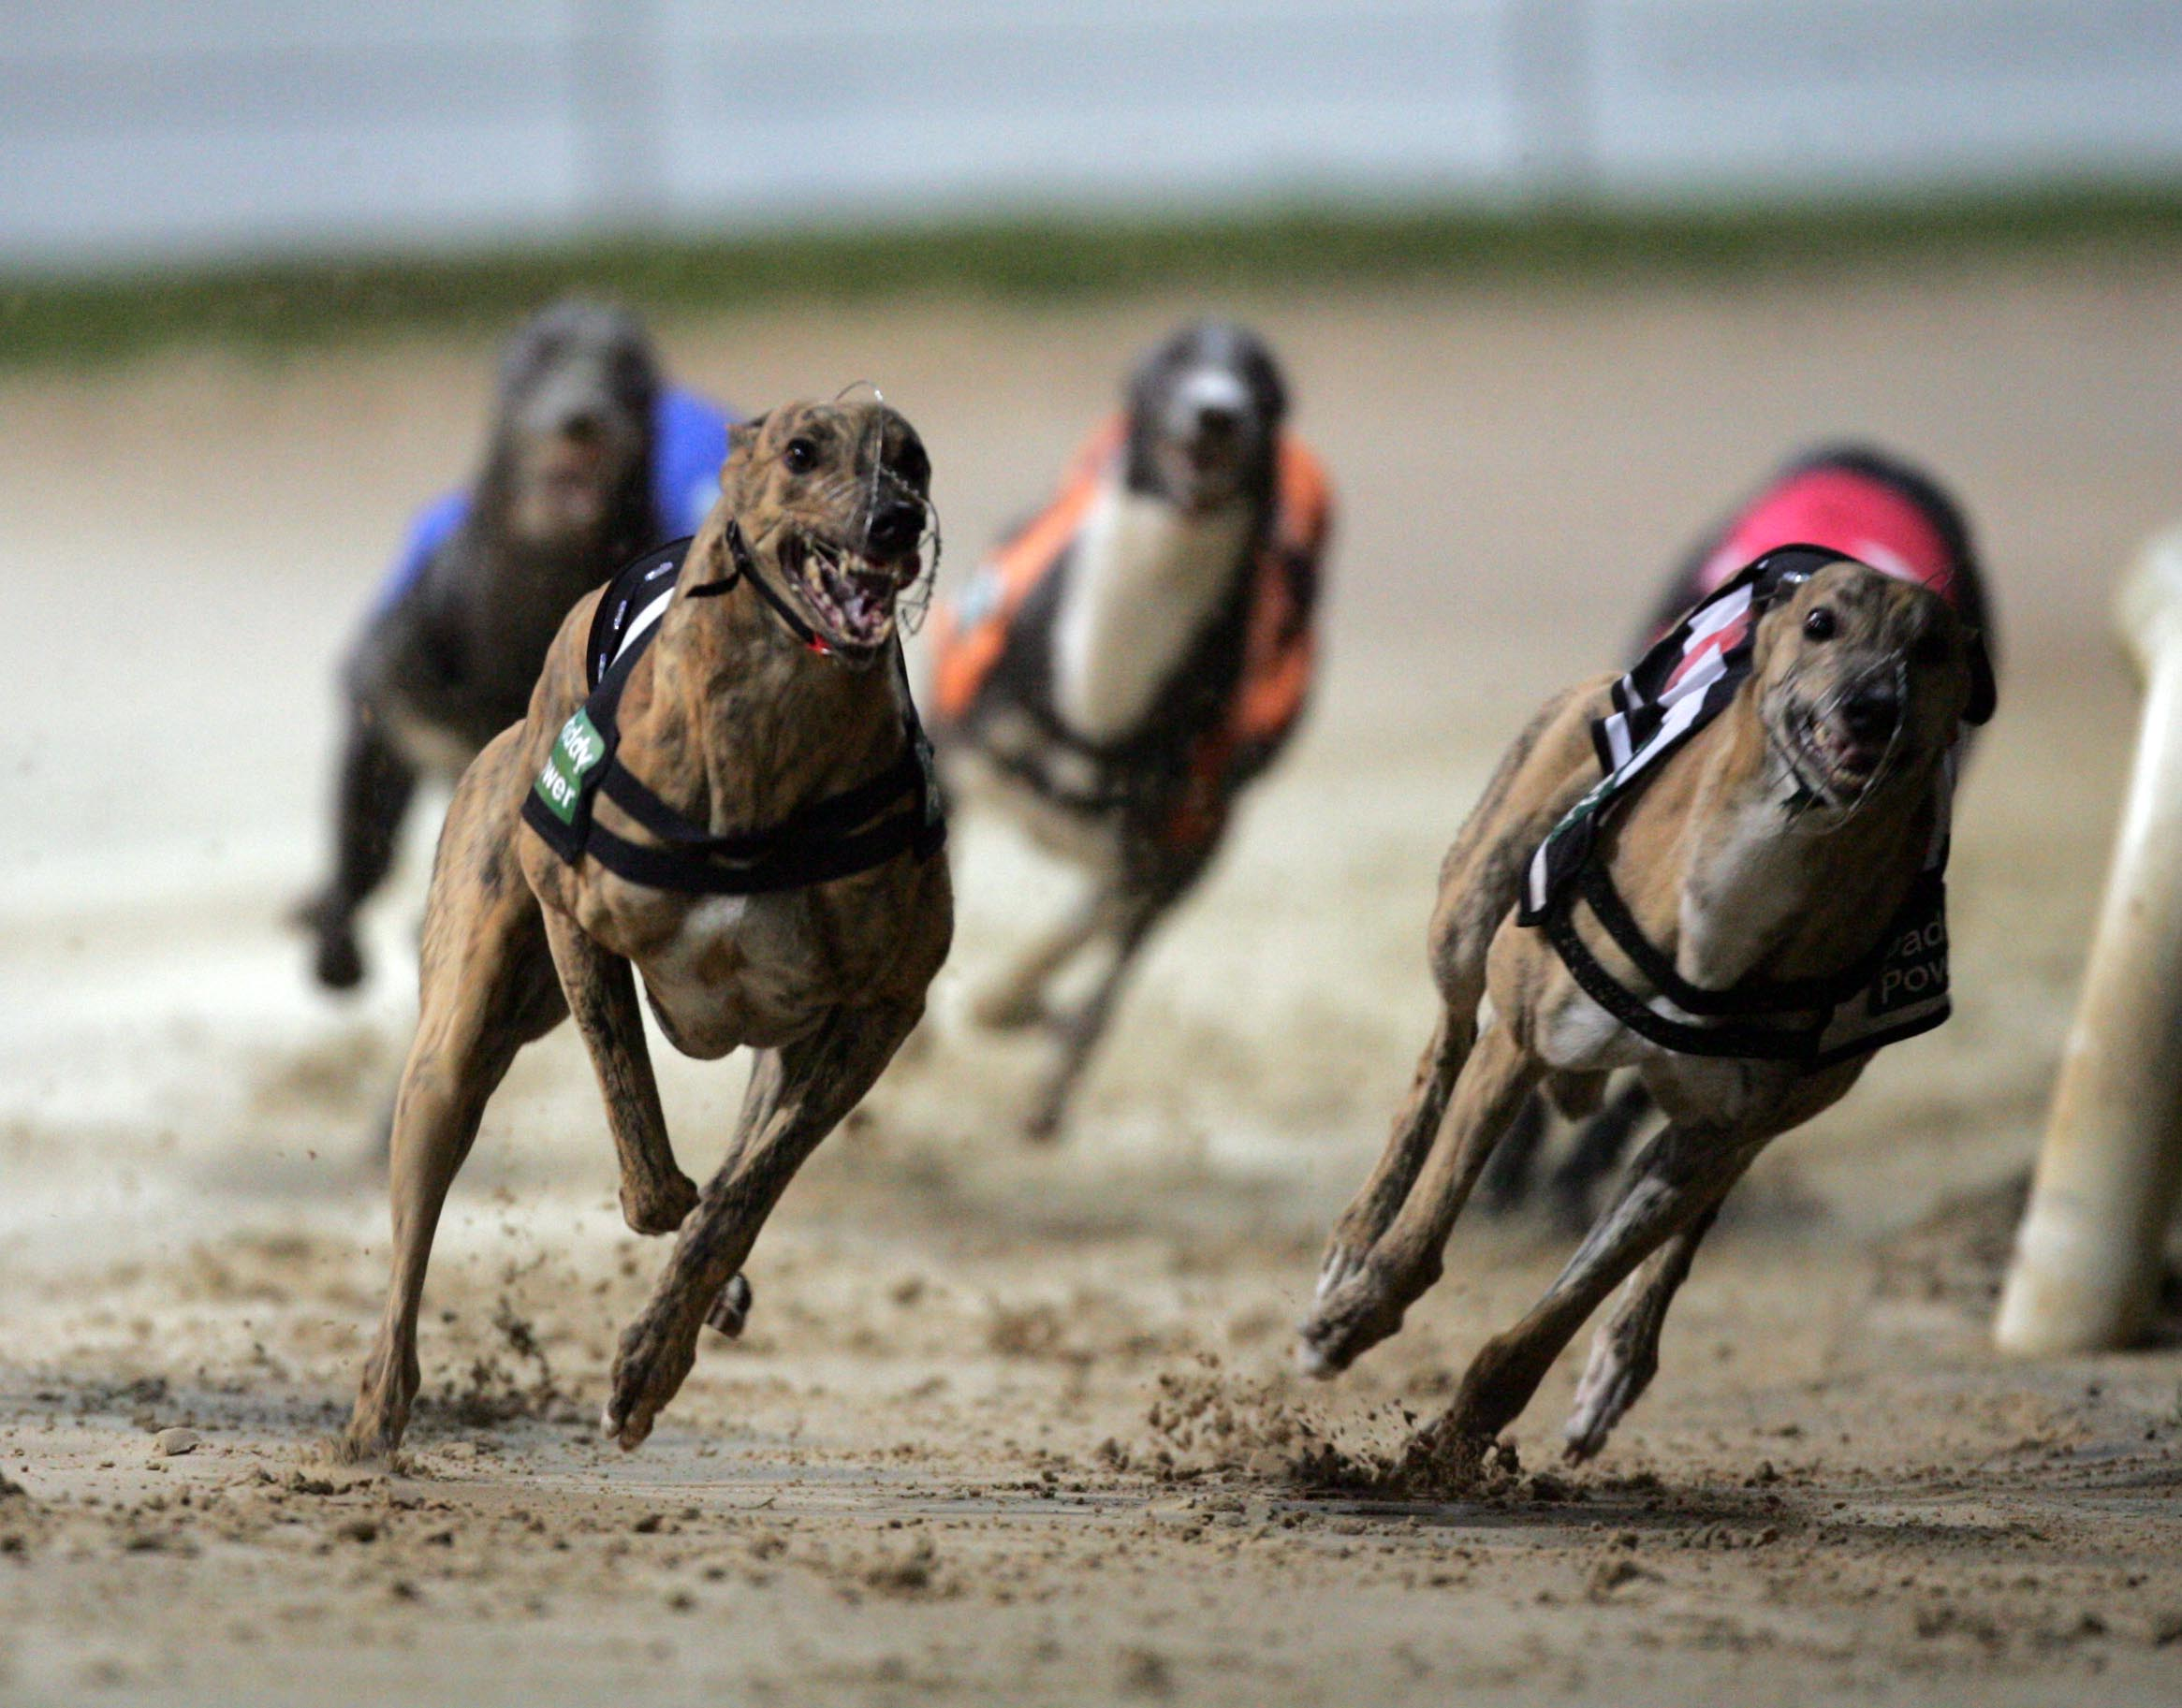 Greyhound racing is a dying sport in America